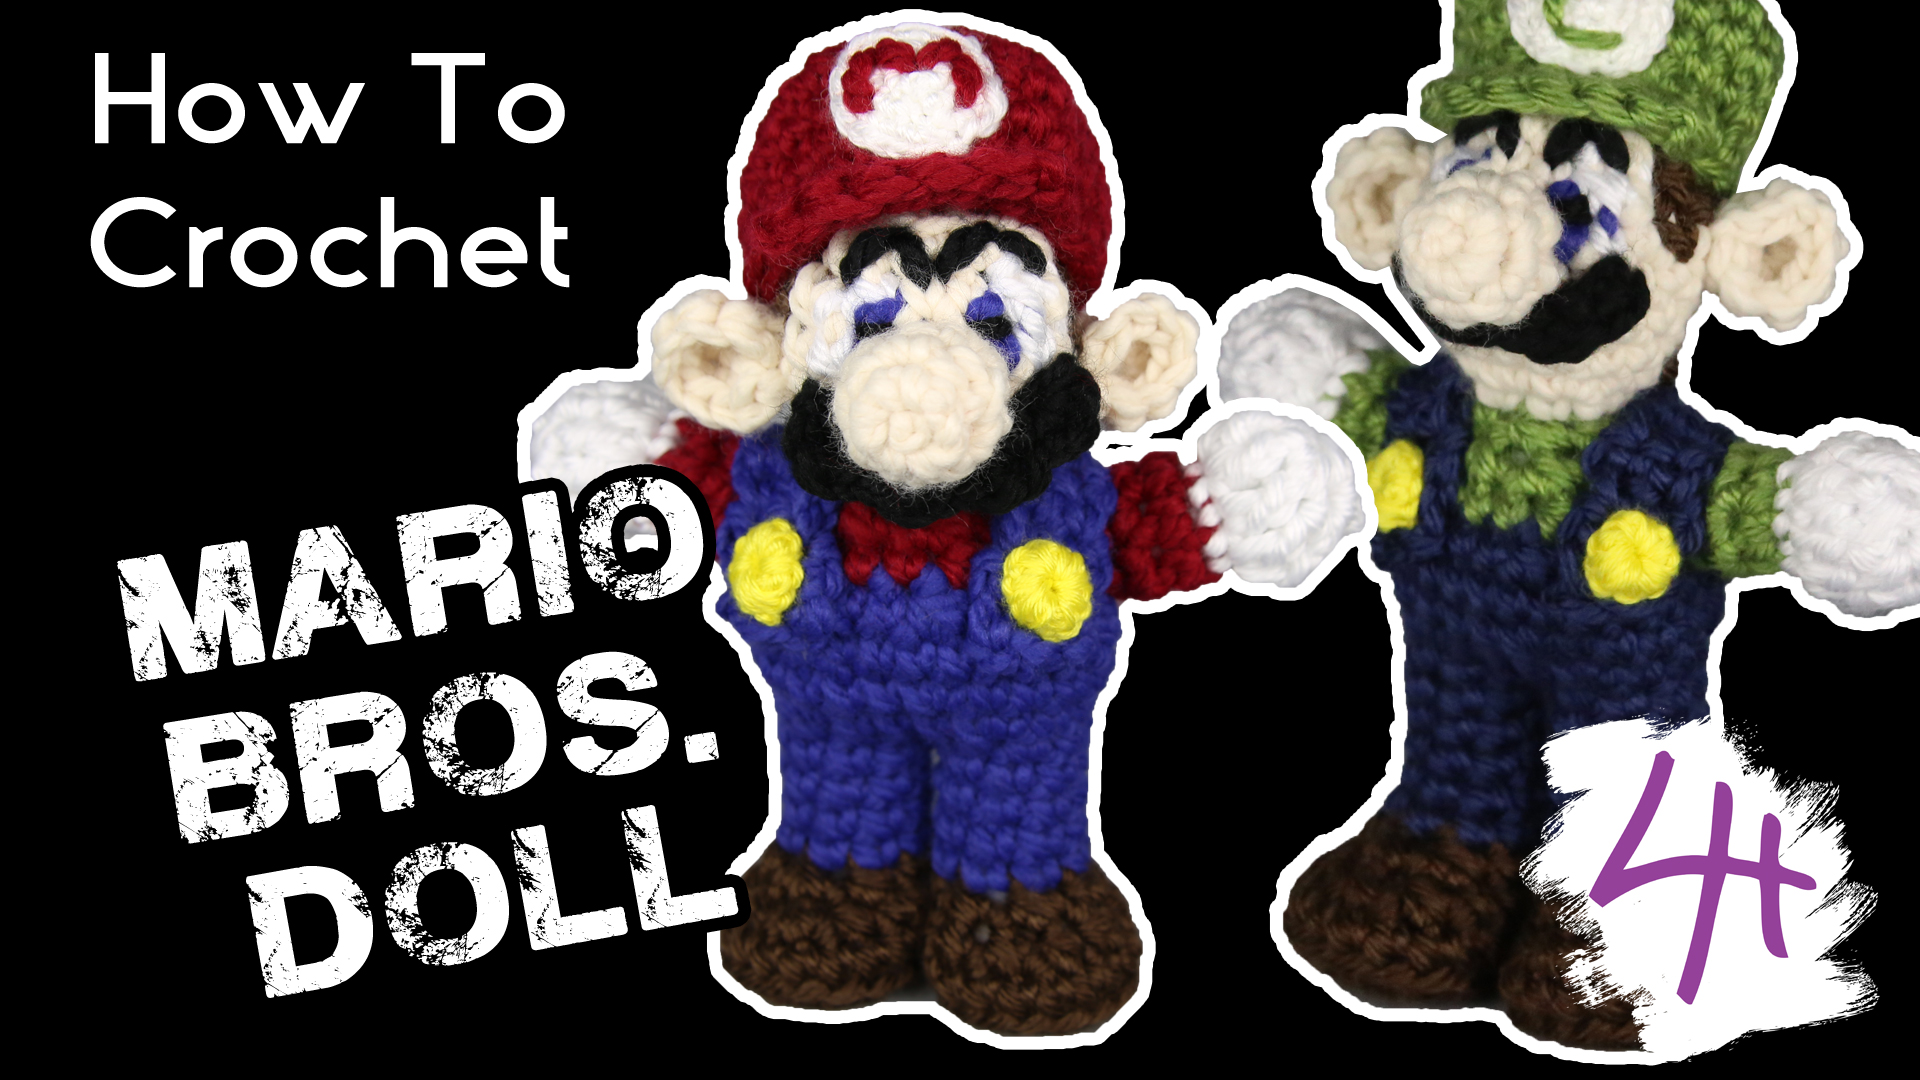 how-to-crochet-mario-bros-doll-lydia-hawk-designs